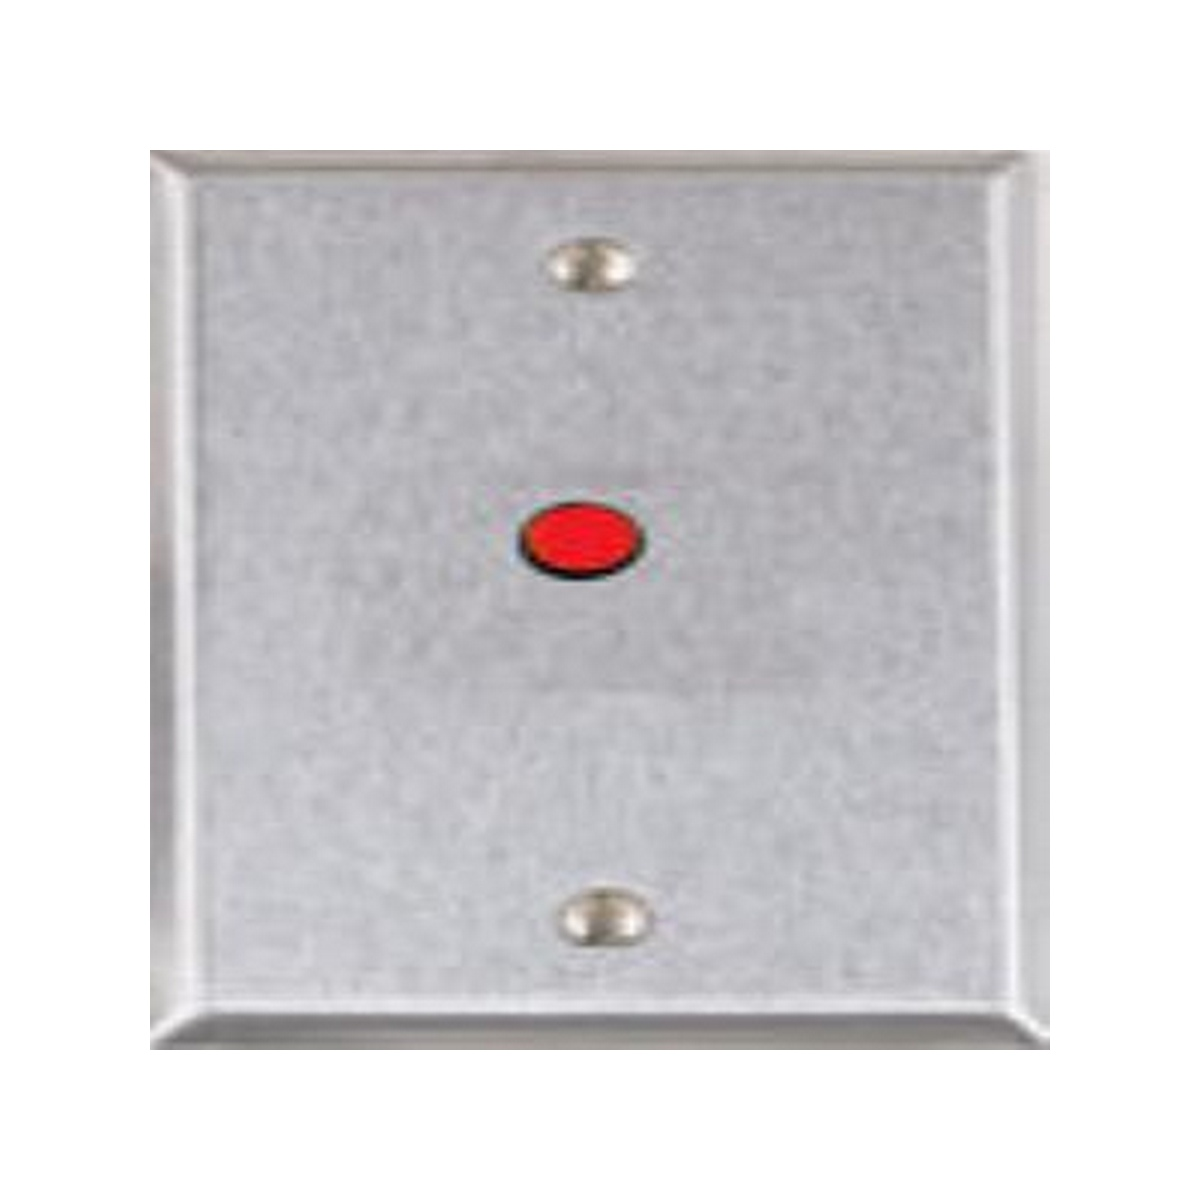 RP-28 Single gang stainless steel remote LED wall plate